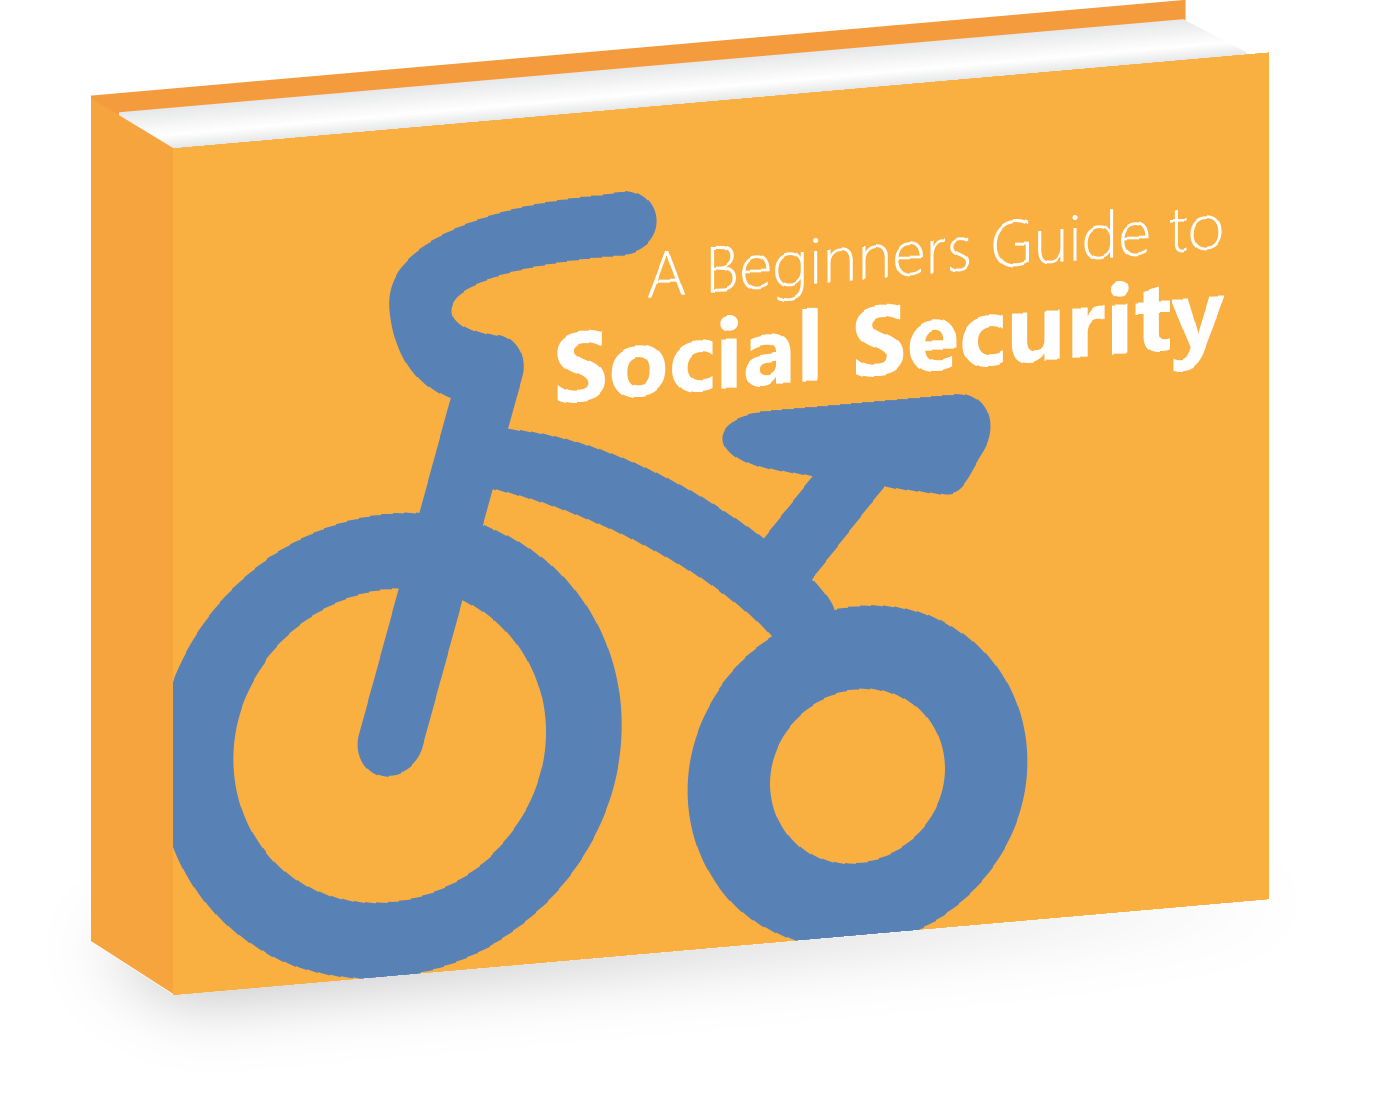 A Beginners Guide to Social Security